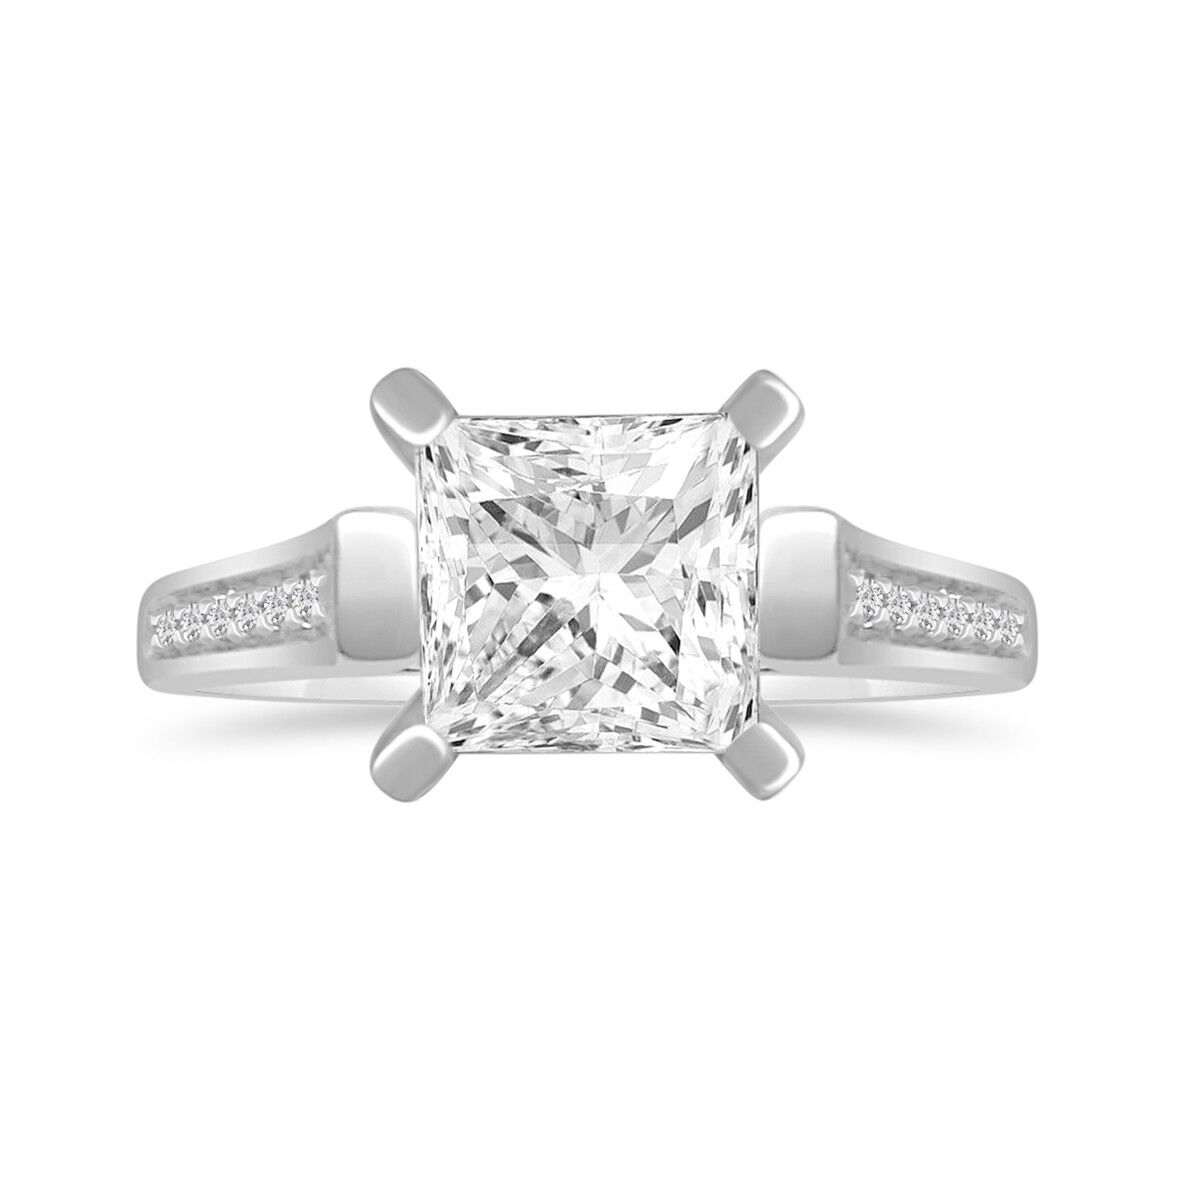 0.75 Ct Princess D VVS1 Solitaire W Accents Engagement Ring 14K gold Over 7MM